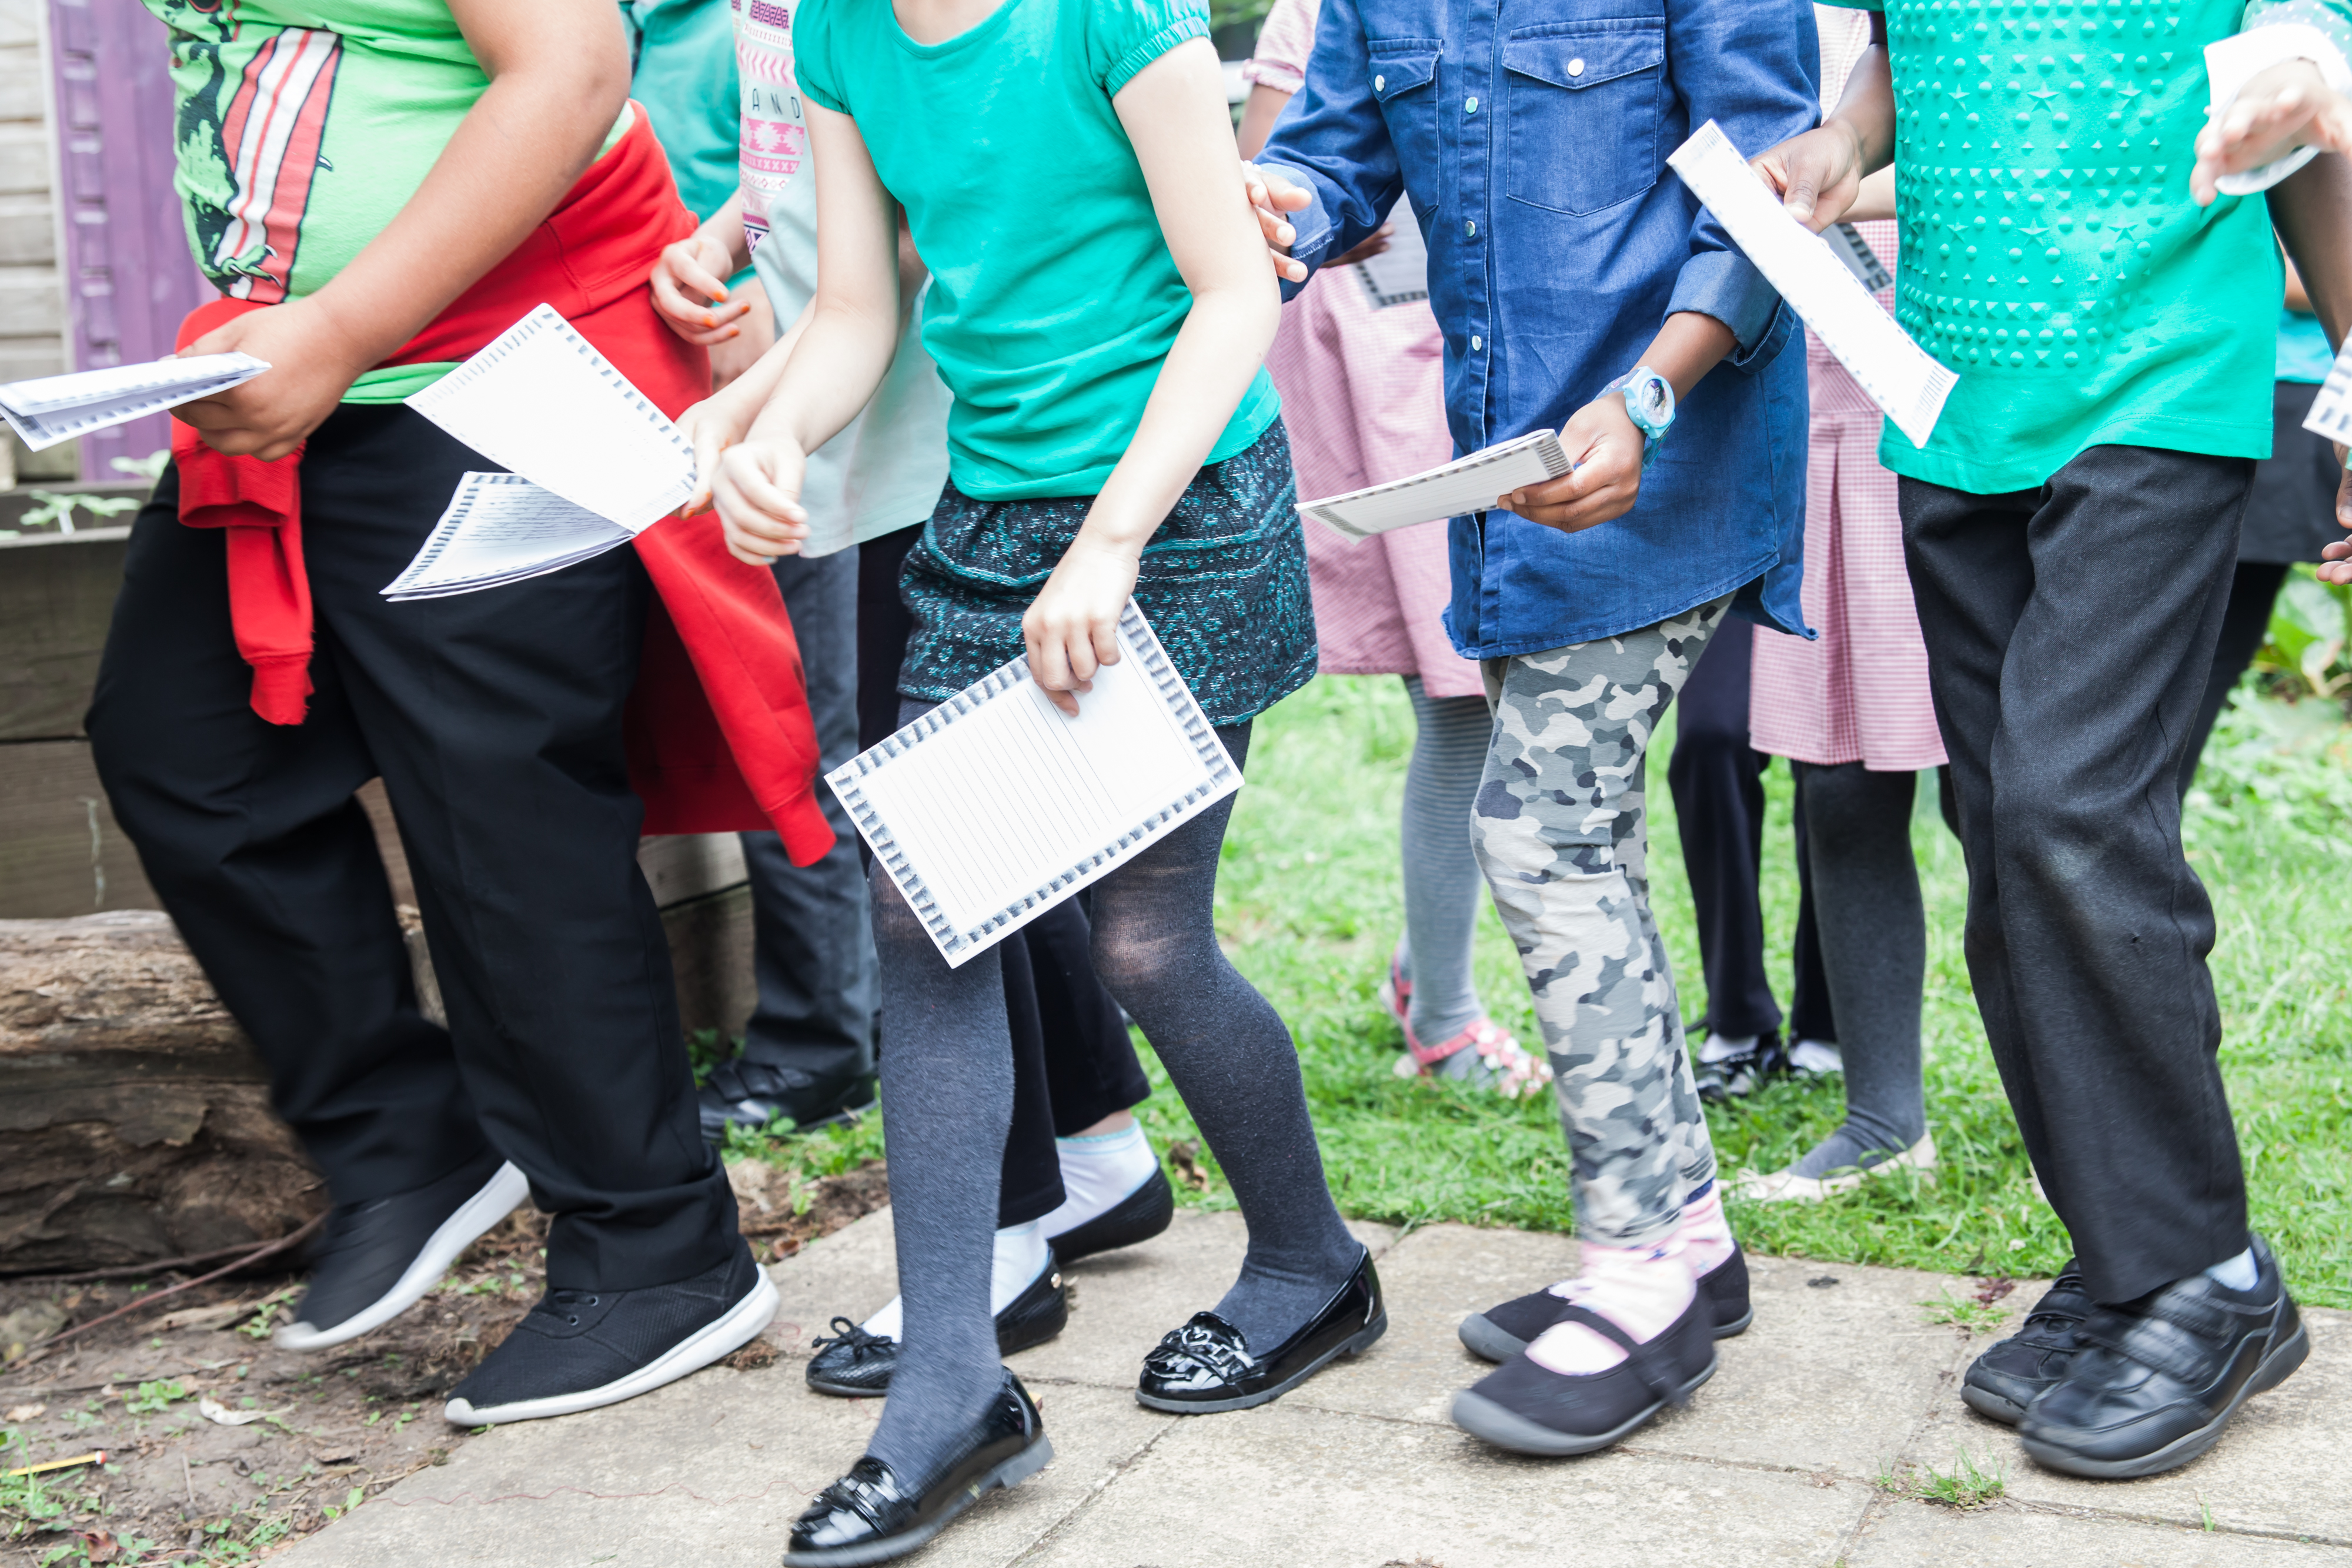 Group of children walking and holding pieces of paper